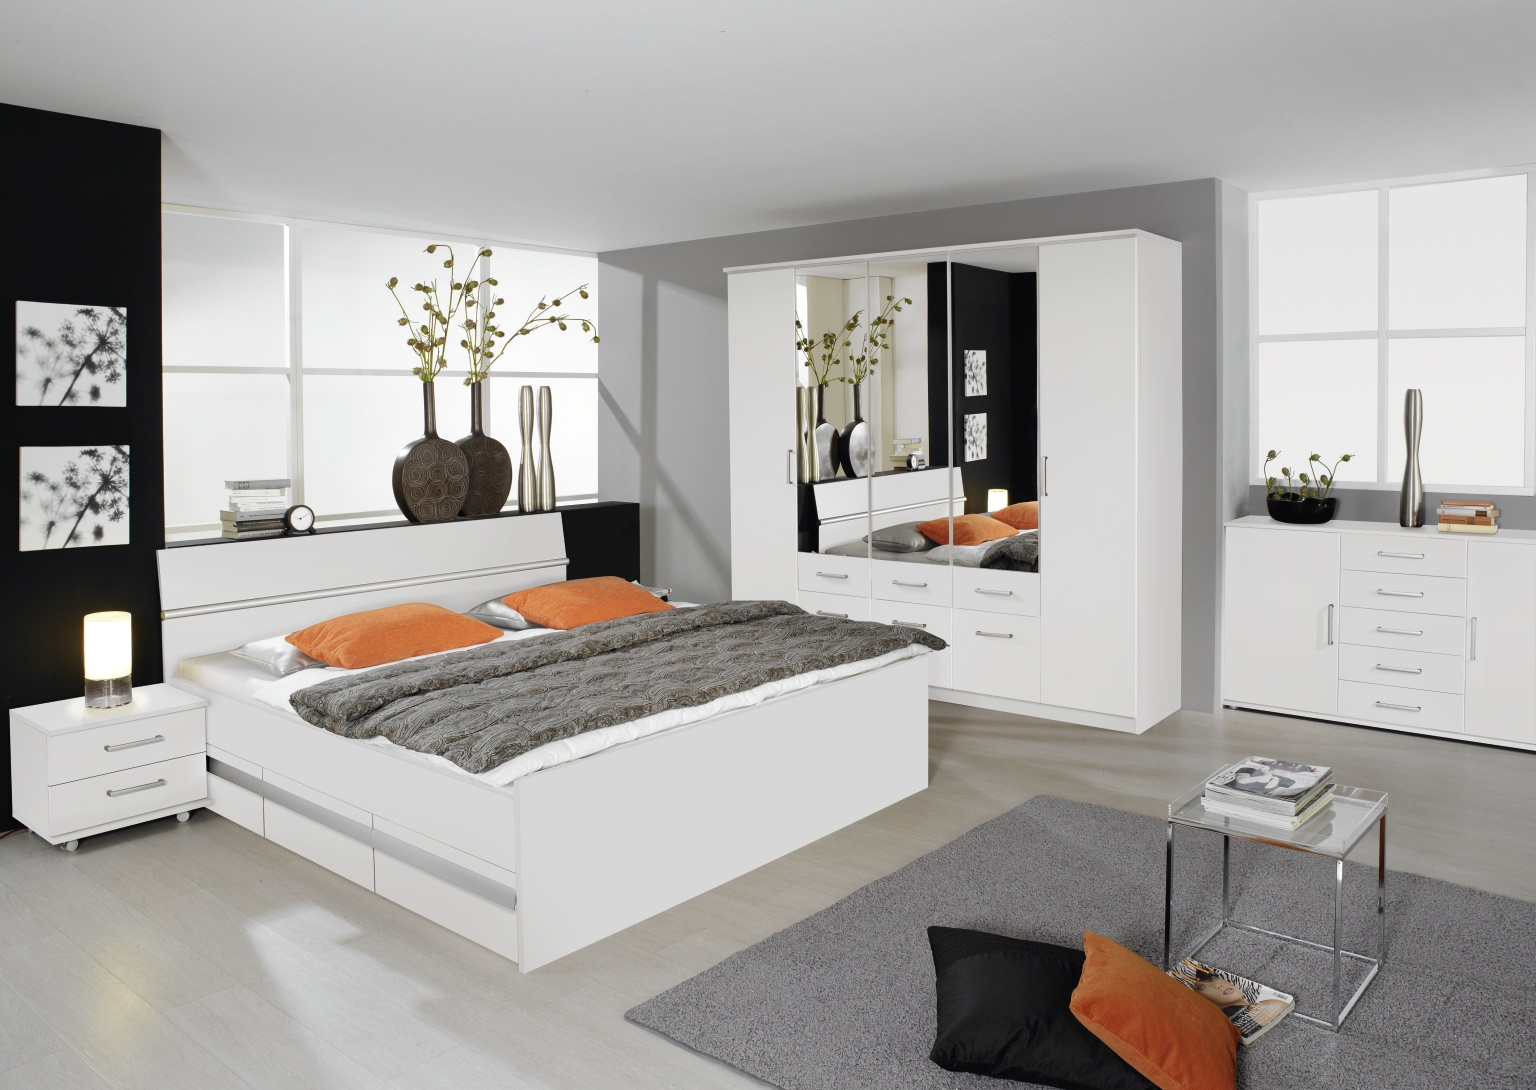 schlafzimmer amuna i interna m bel. Black Bedroom Furniture Sets. Home Design Ideas